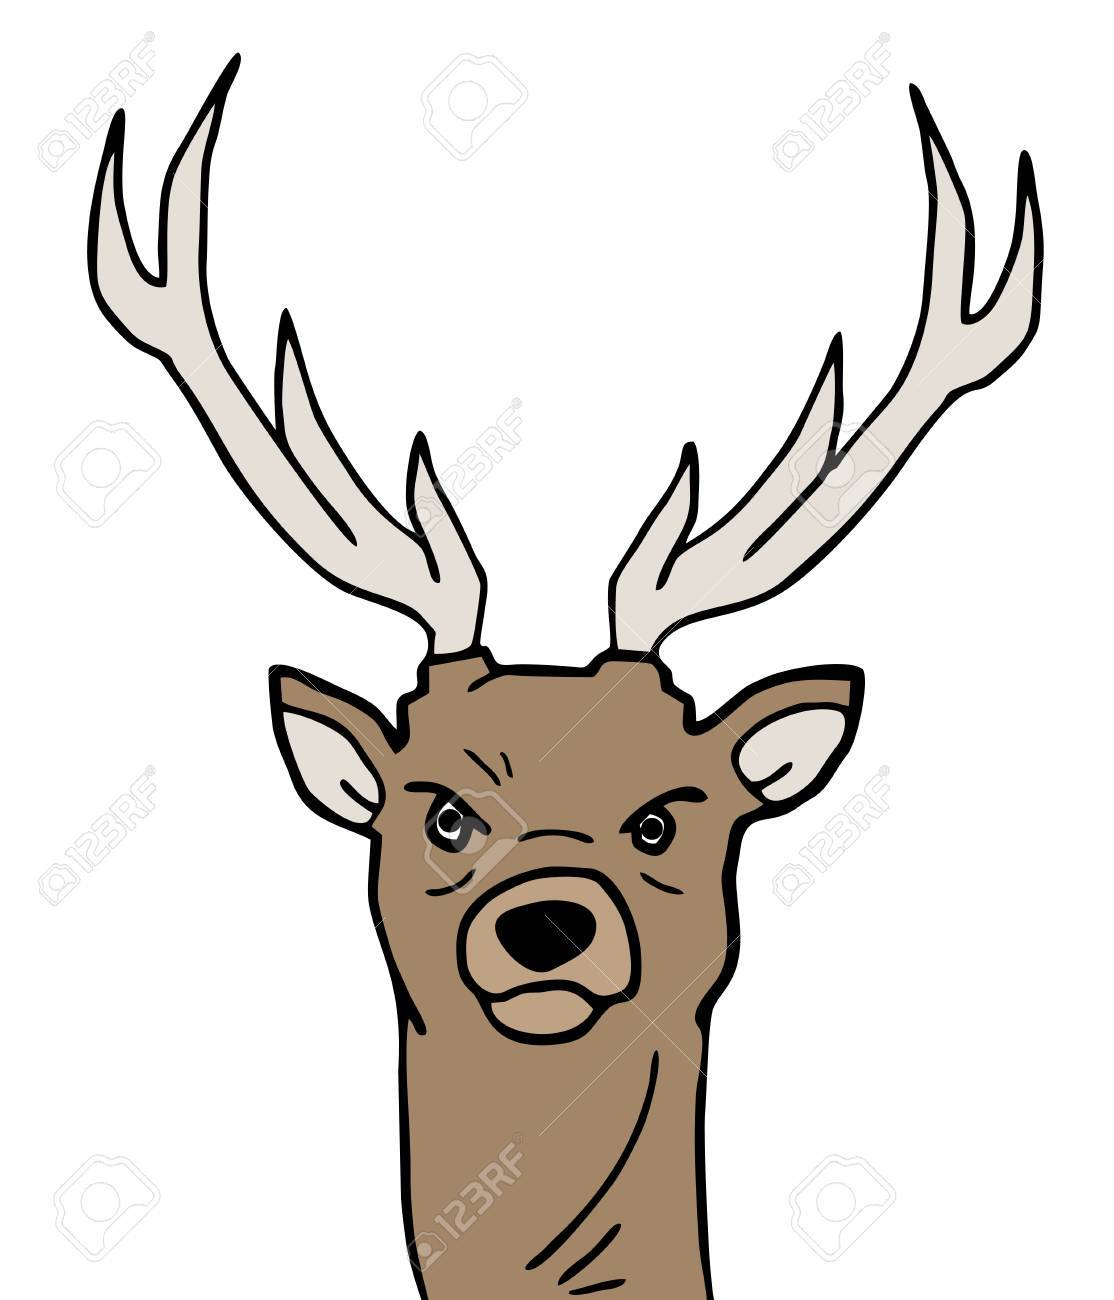 Animal expression Stock Vector - 15601903